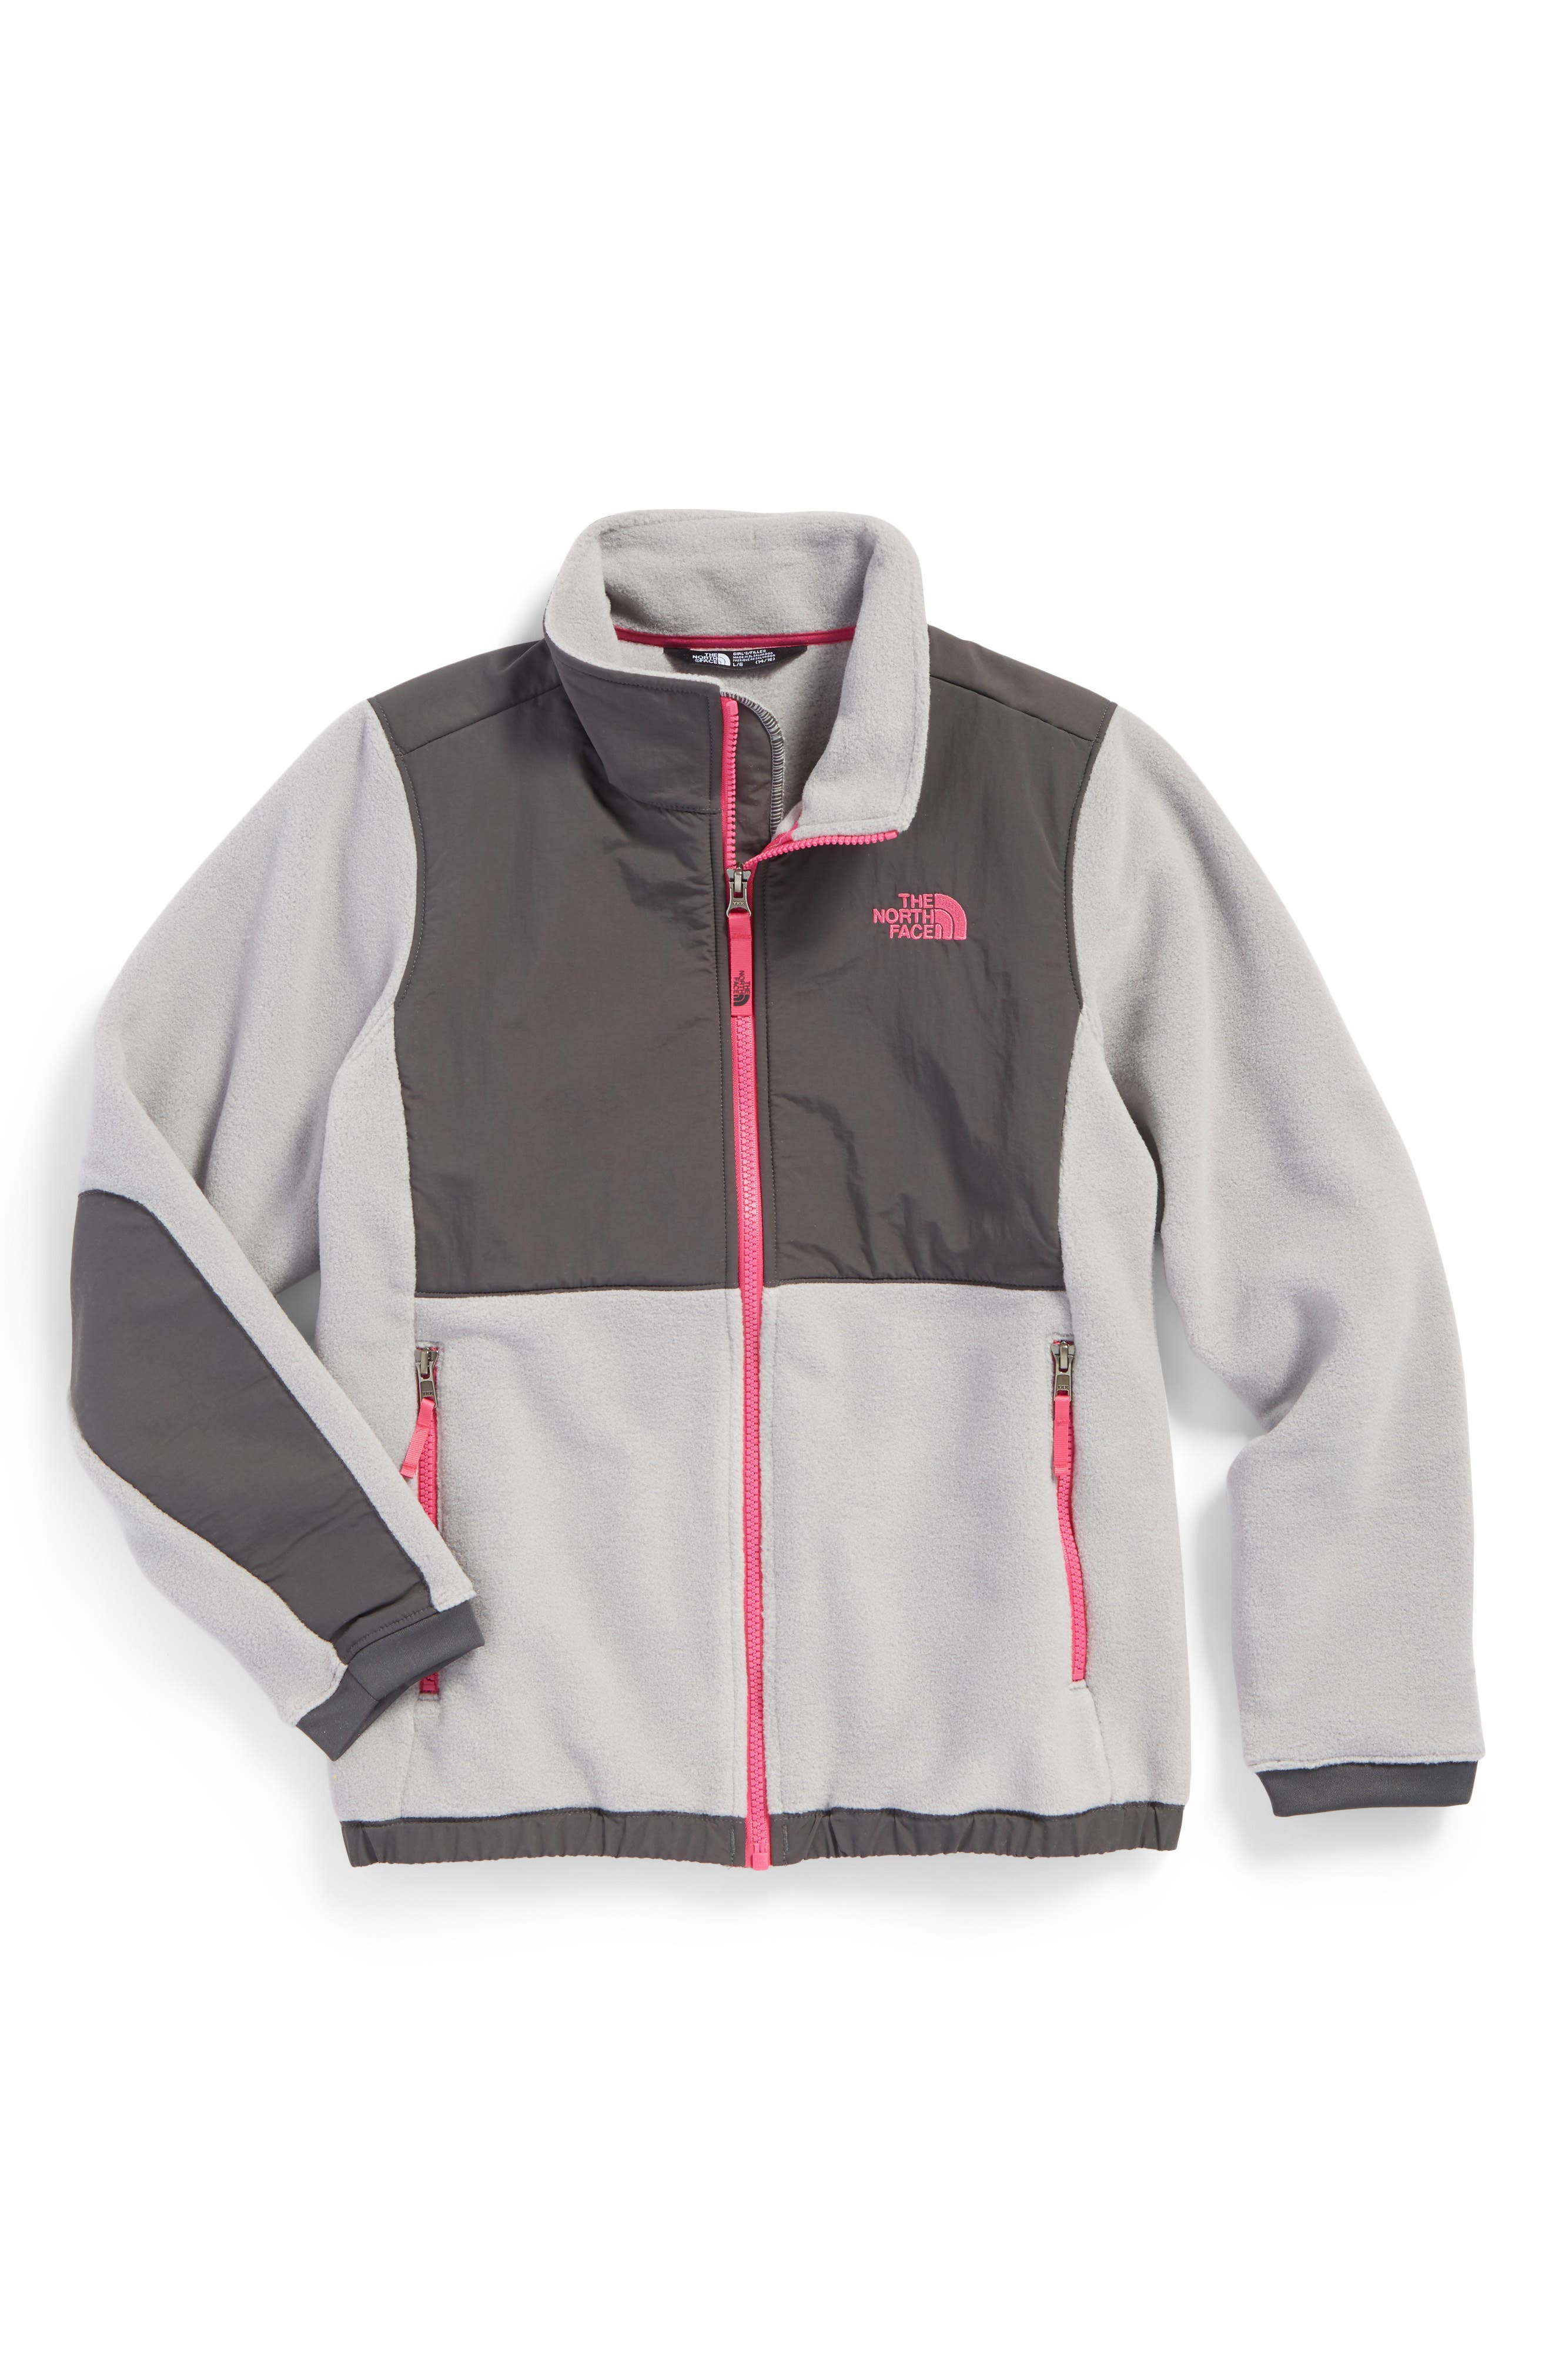 Alternate Image 1 Selected - The North Face Denali Recycled Fleece Jacket (Big Girls)